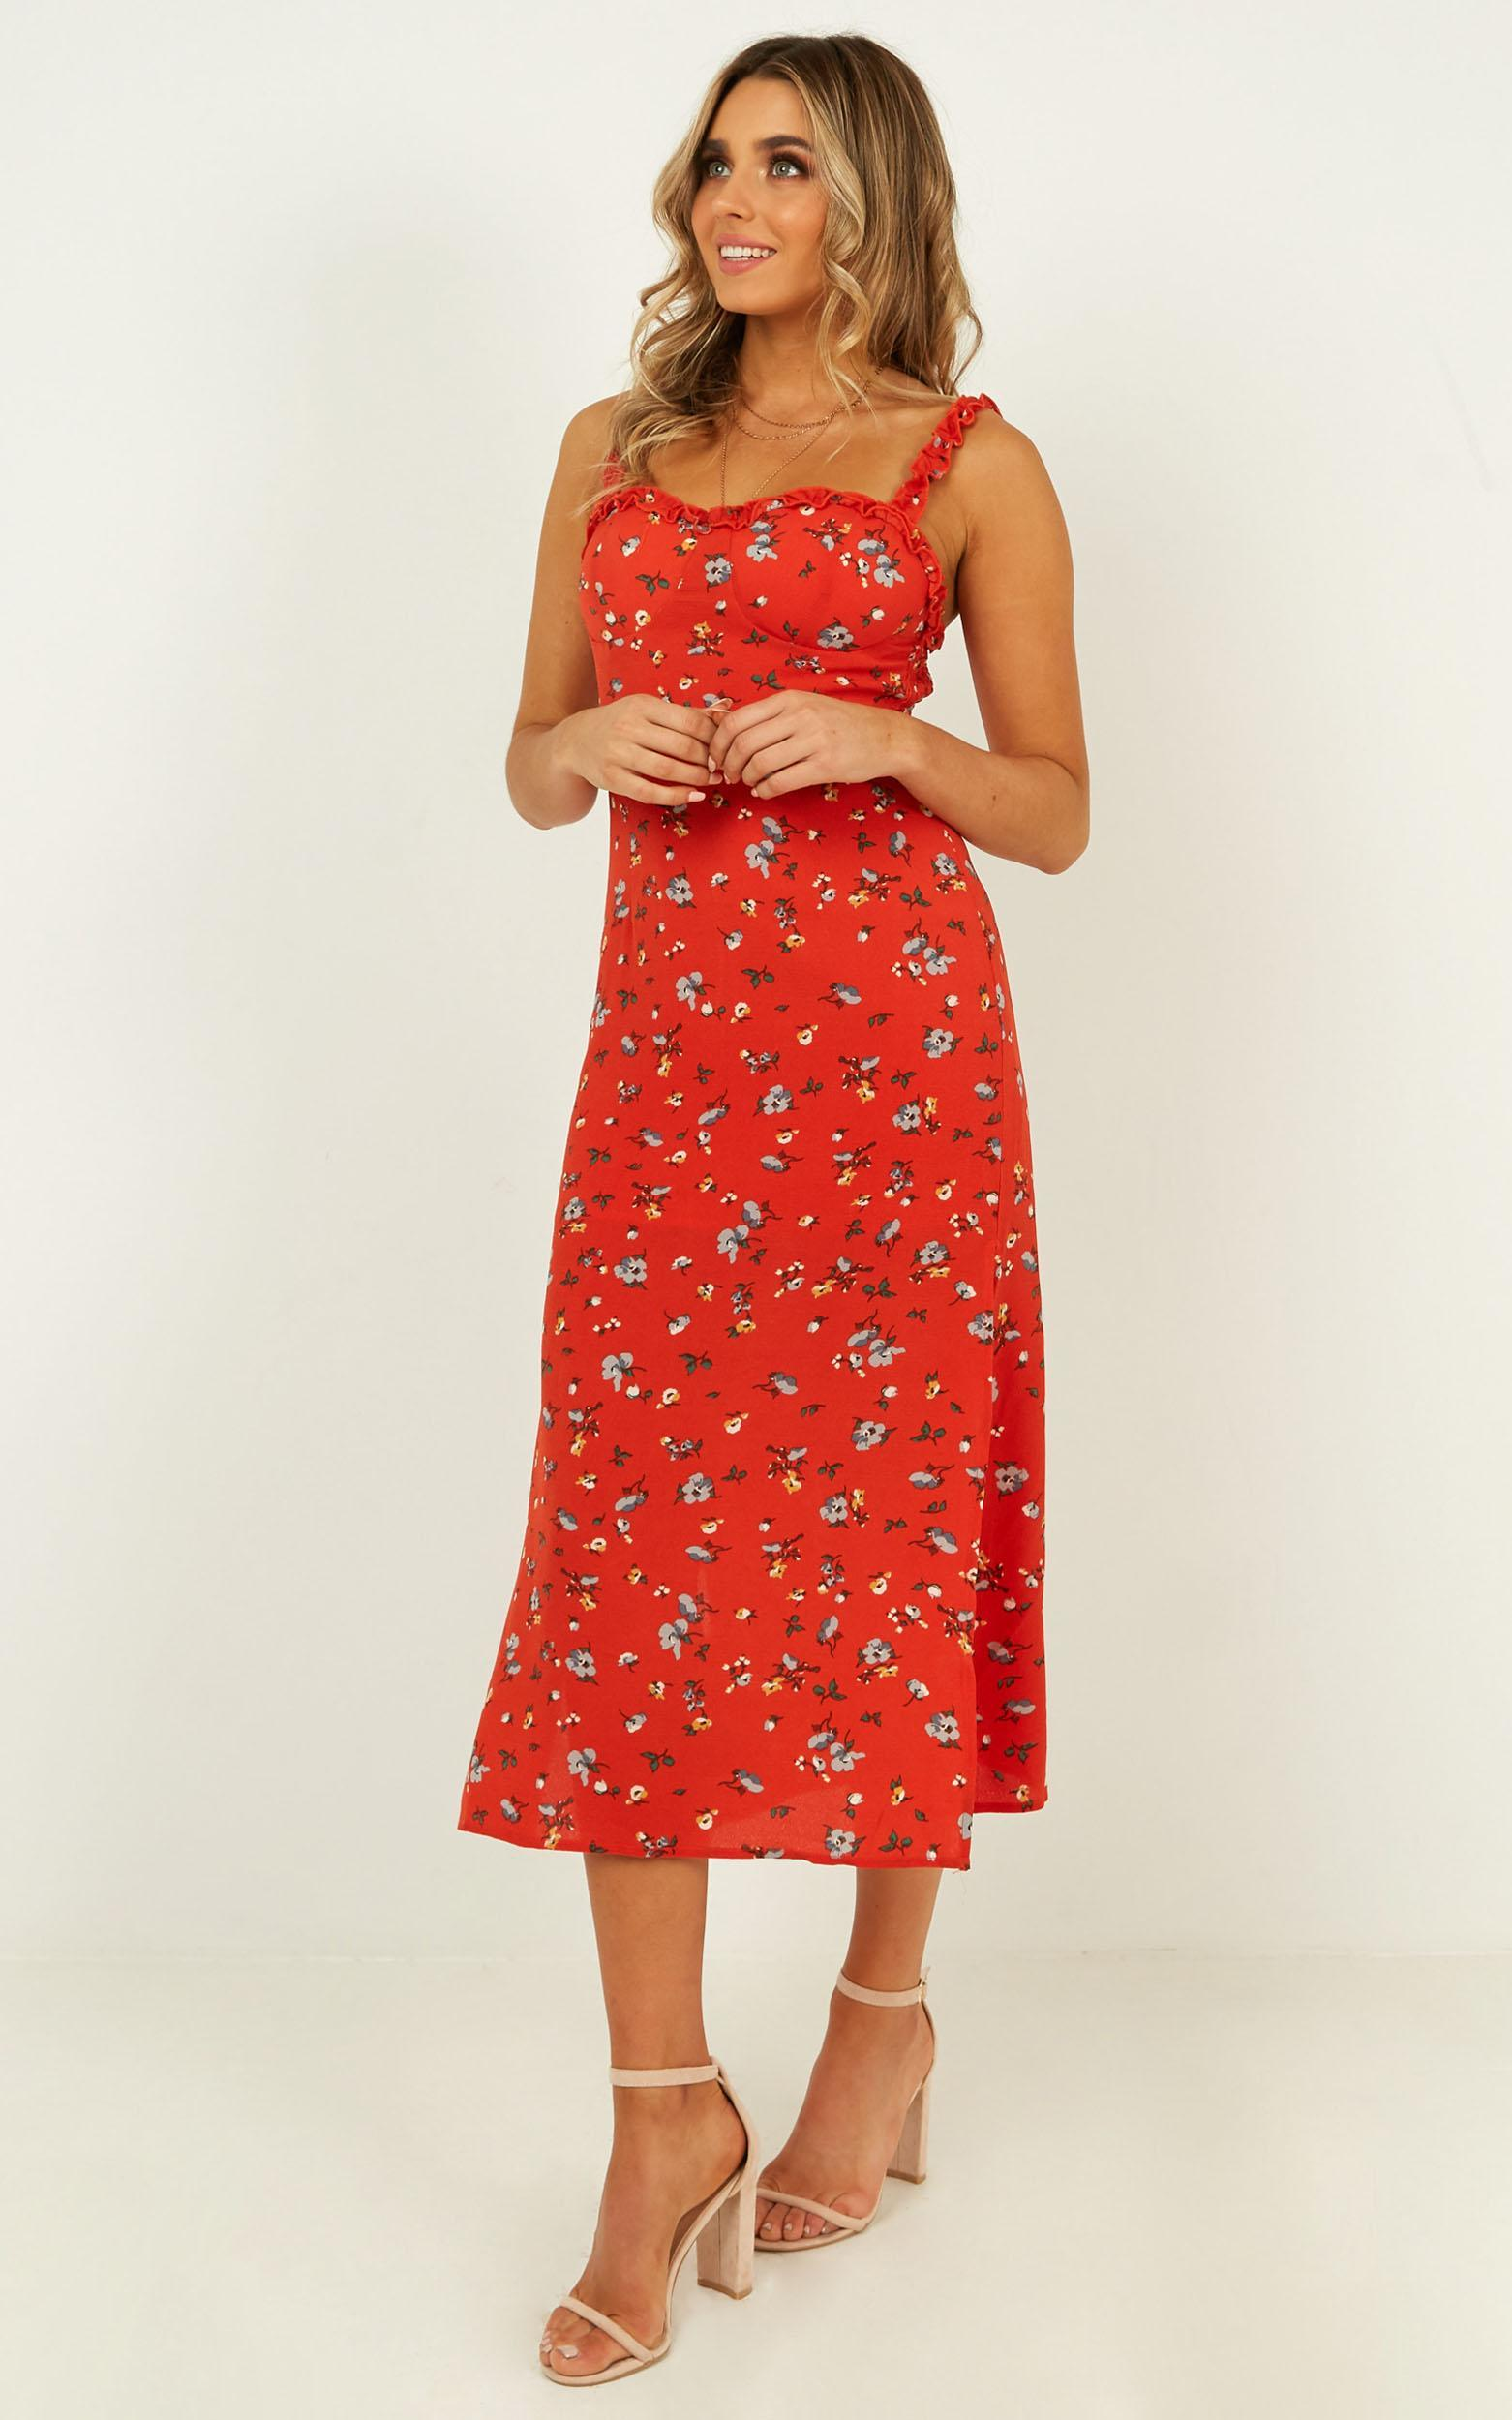 My Side Dress In red floral - 20 (XXXXL), Red, hi-res image number null